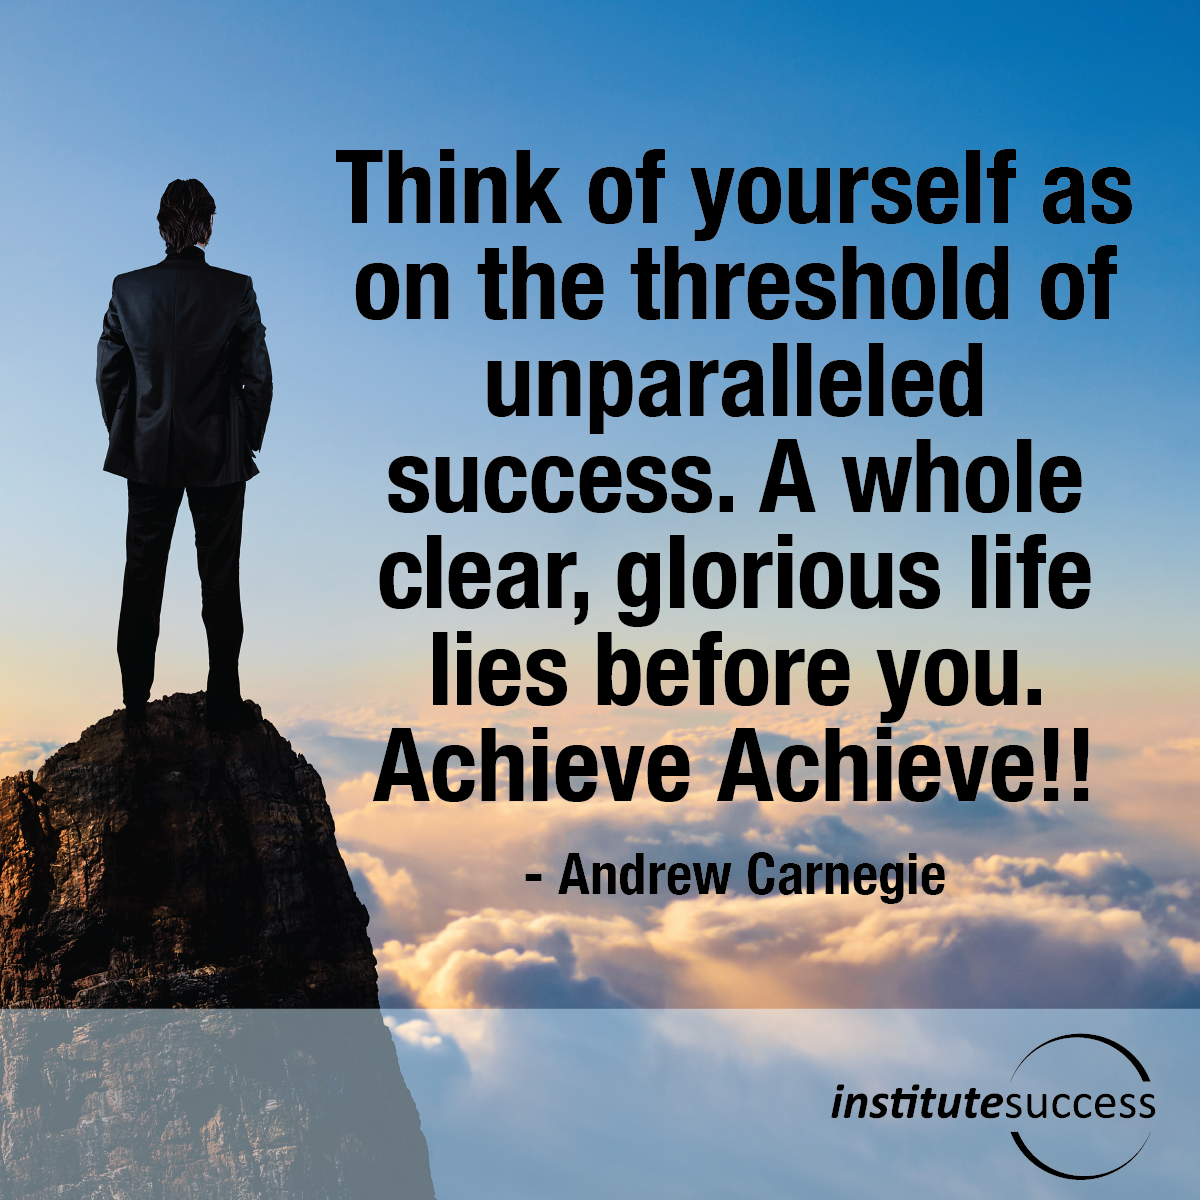 Think of yourself as on the threshold of unparalleled success. A whole clear, glorious life lies before you. Achieve Achieve – Andrew Carnegie